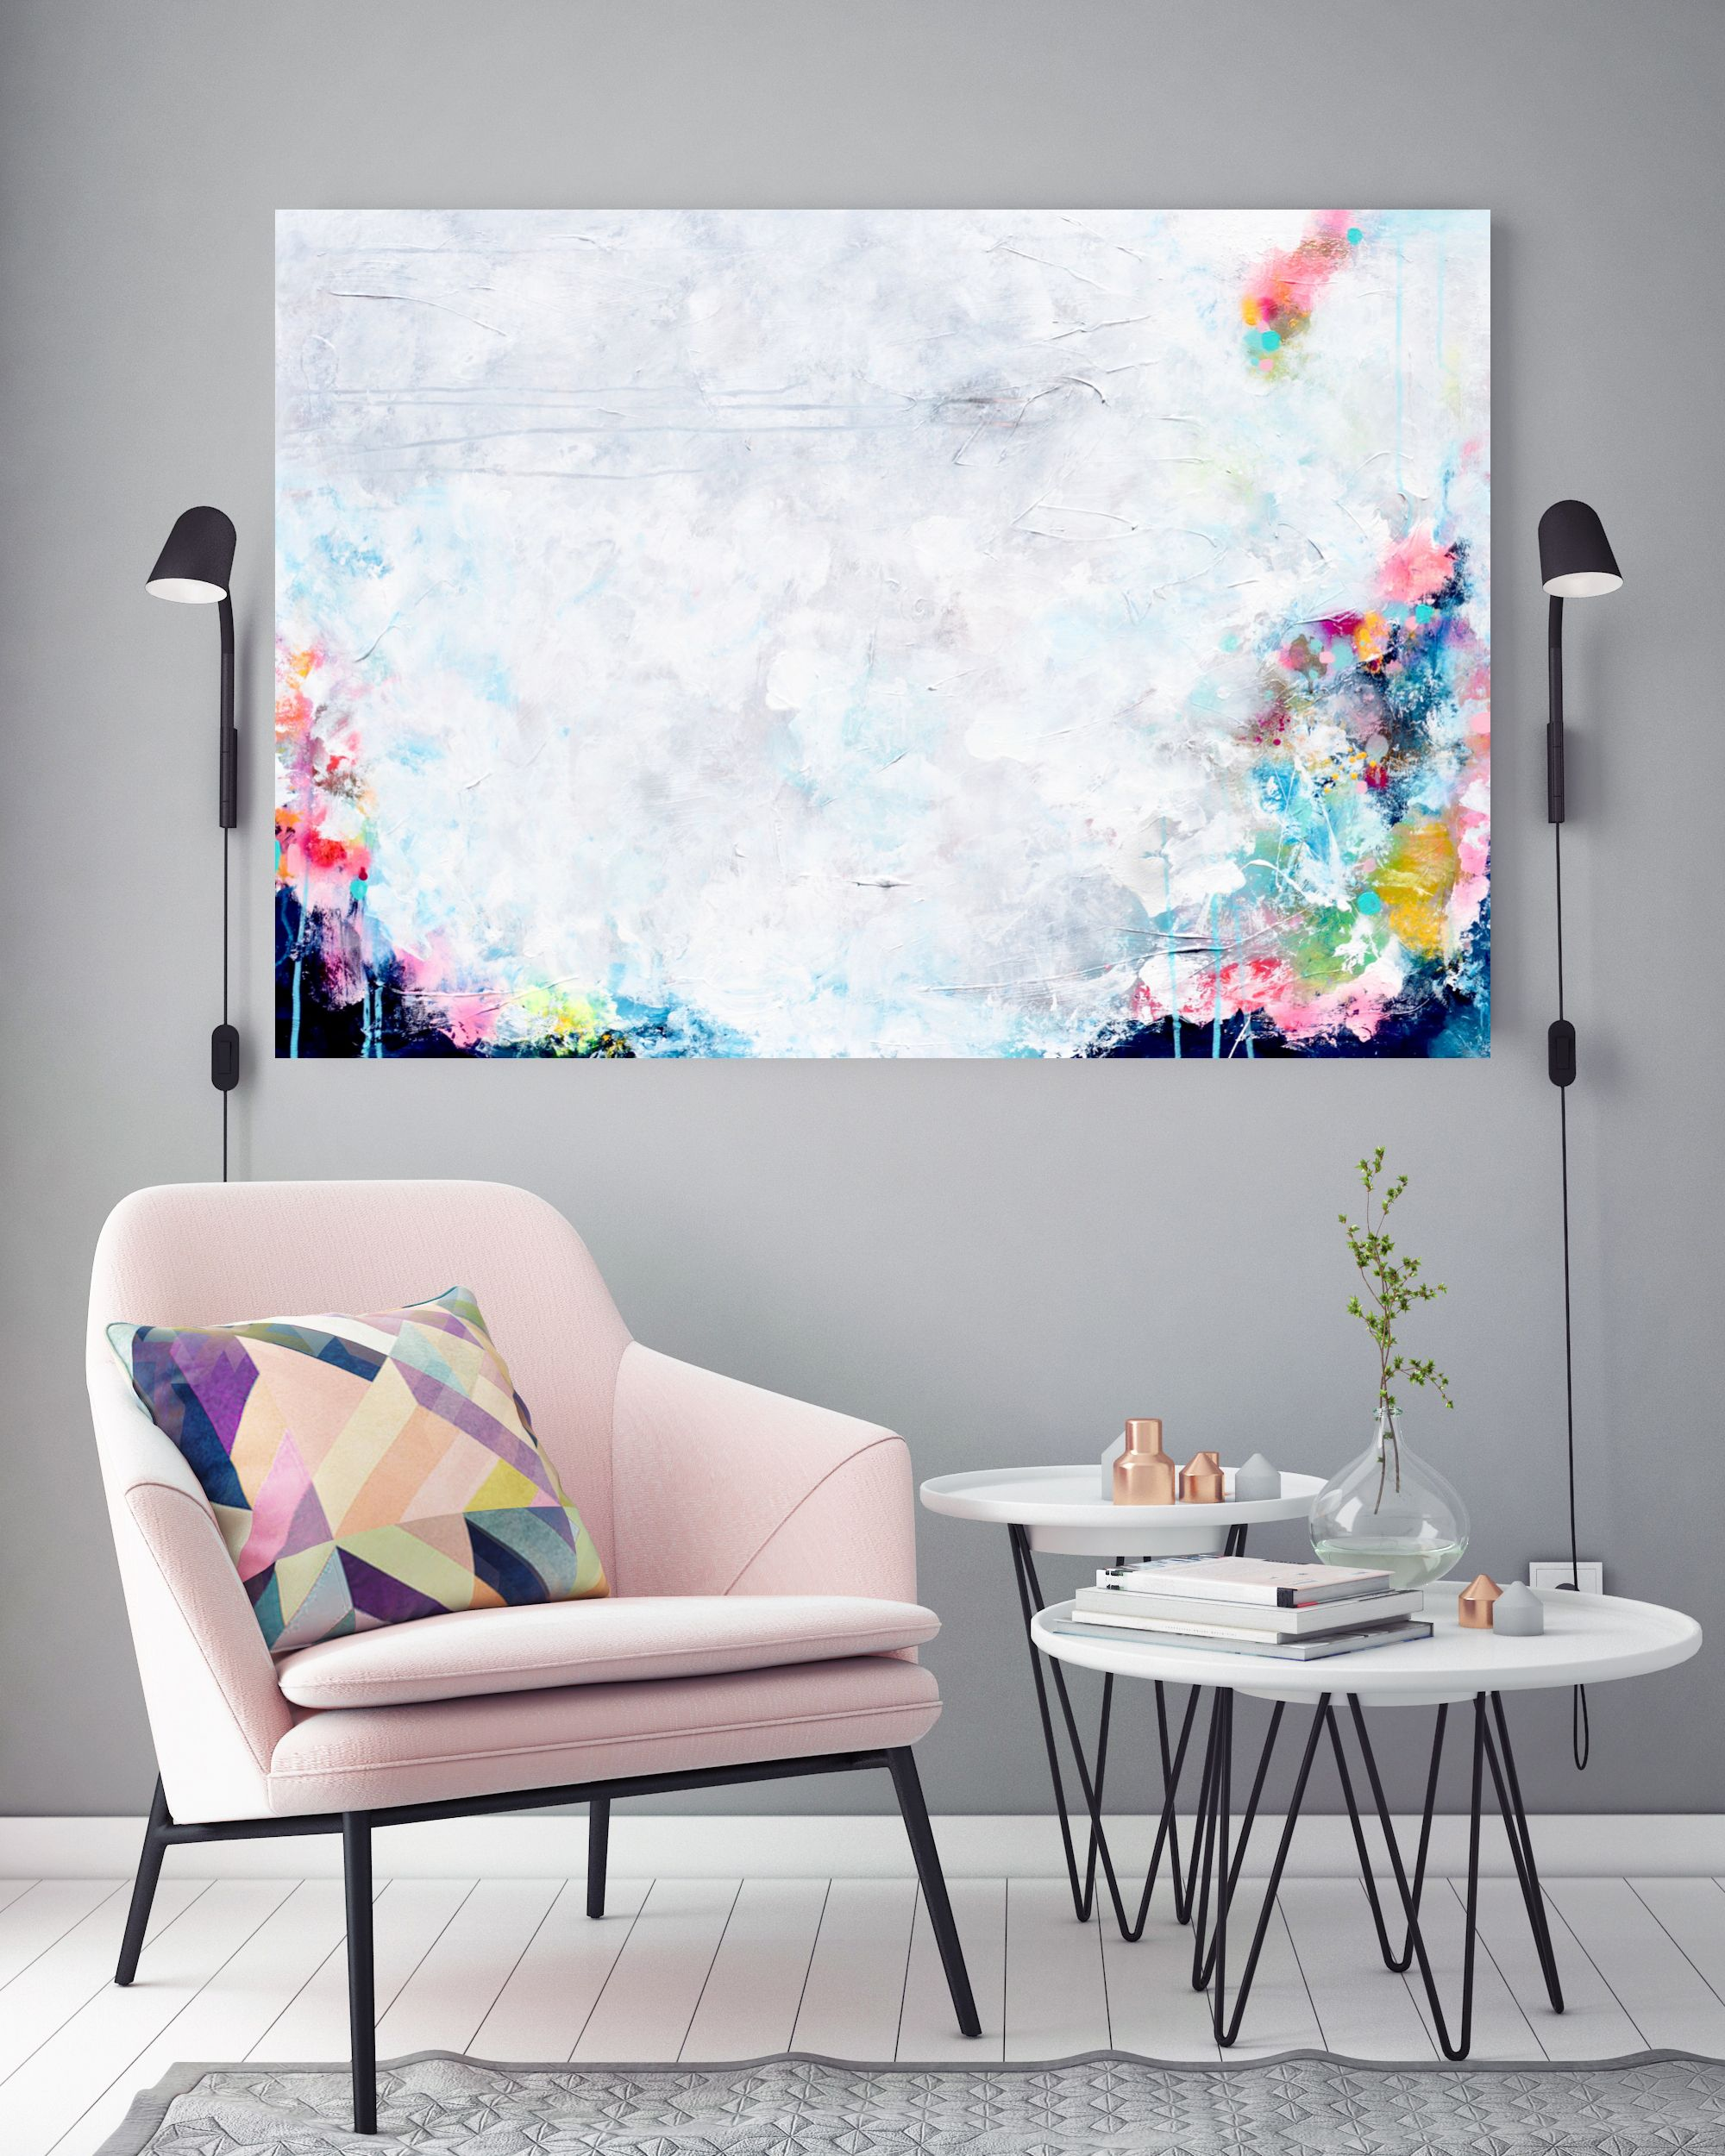 Abstract Schilderij | www.esthergemser.com | Artist Esther Gemser ...